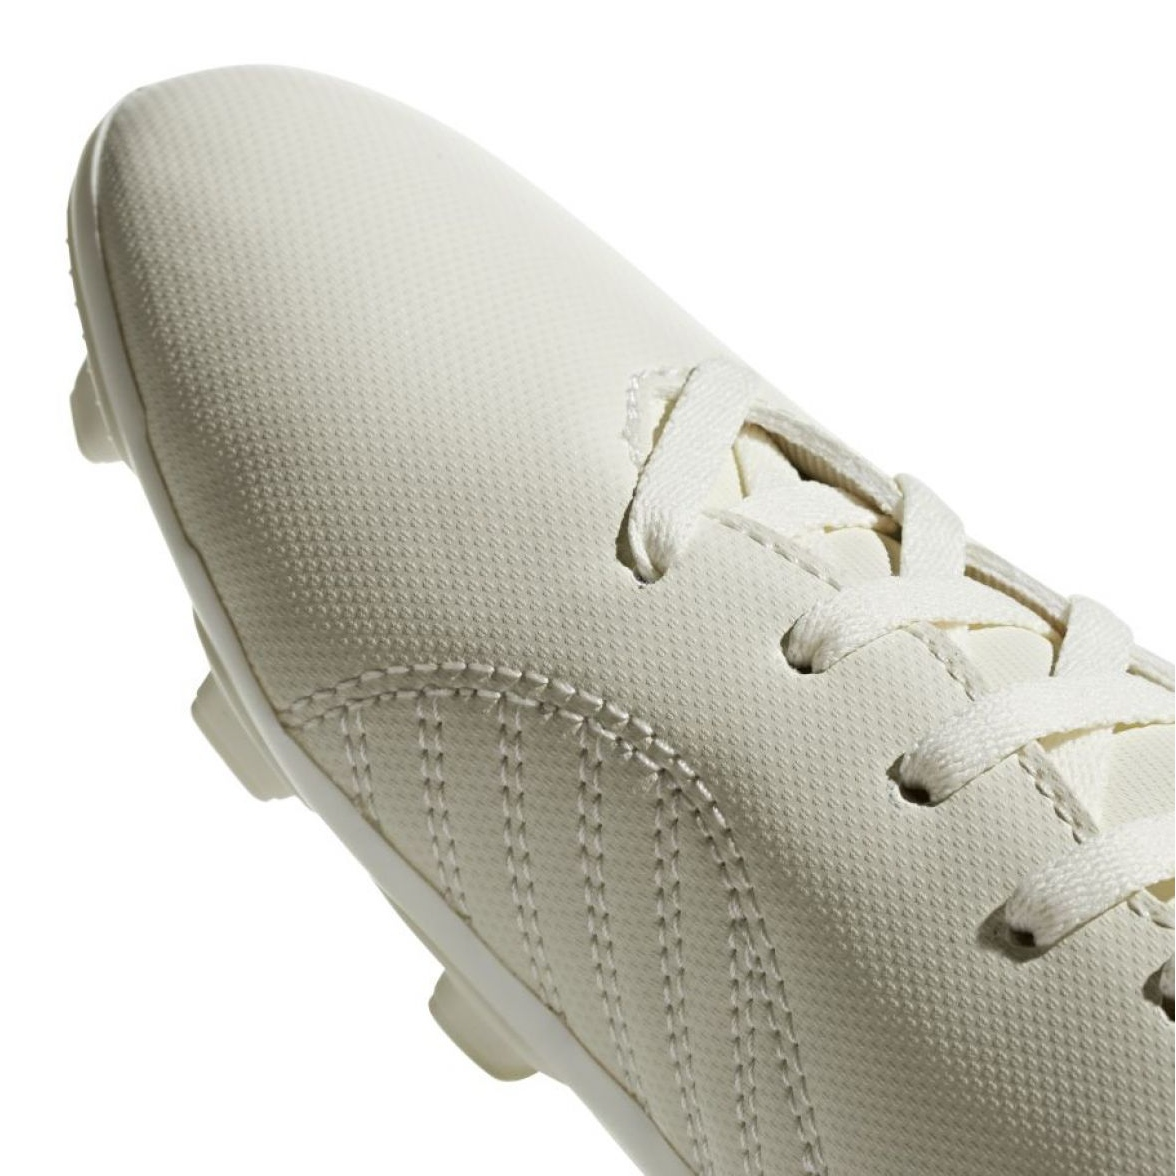 Details about Football shoes adidas X 18.4 FxG Jr DB2421 white white